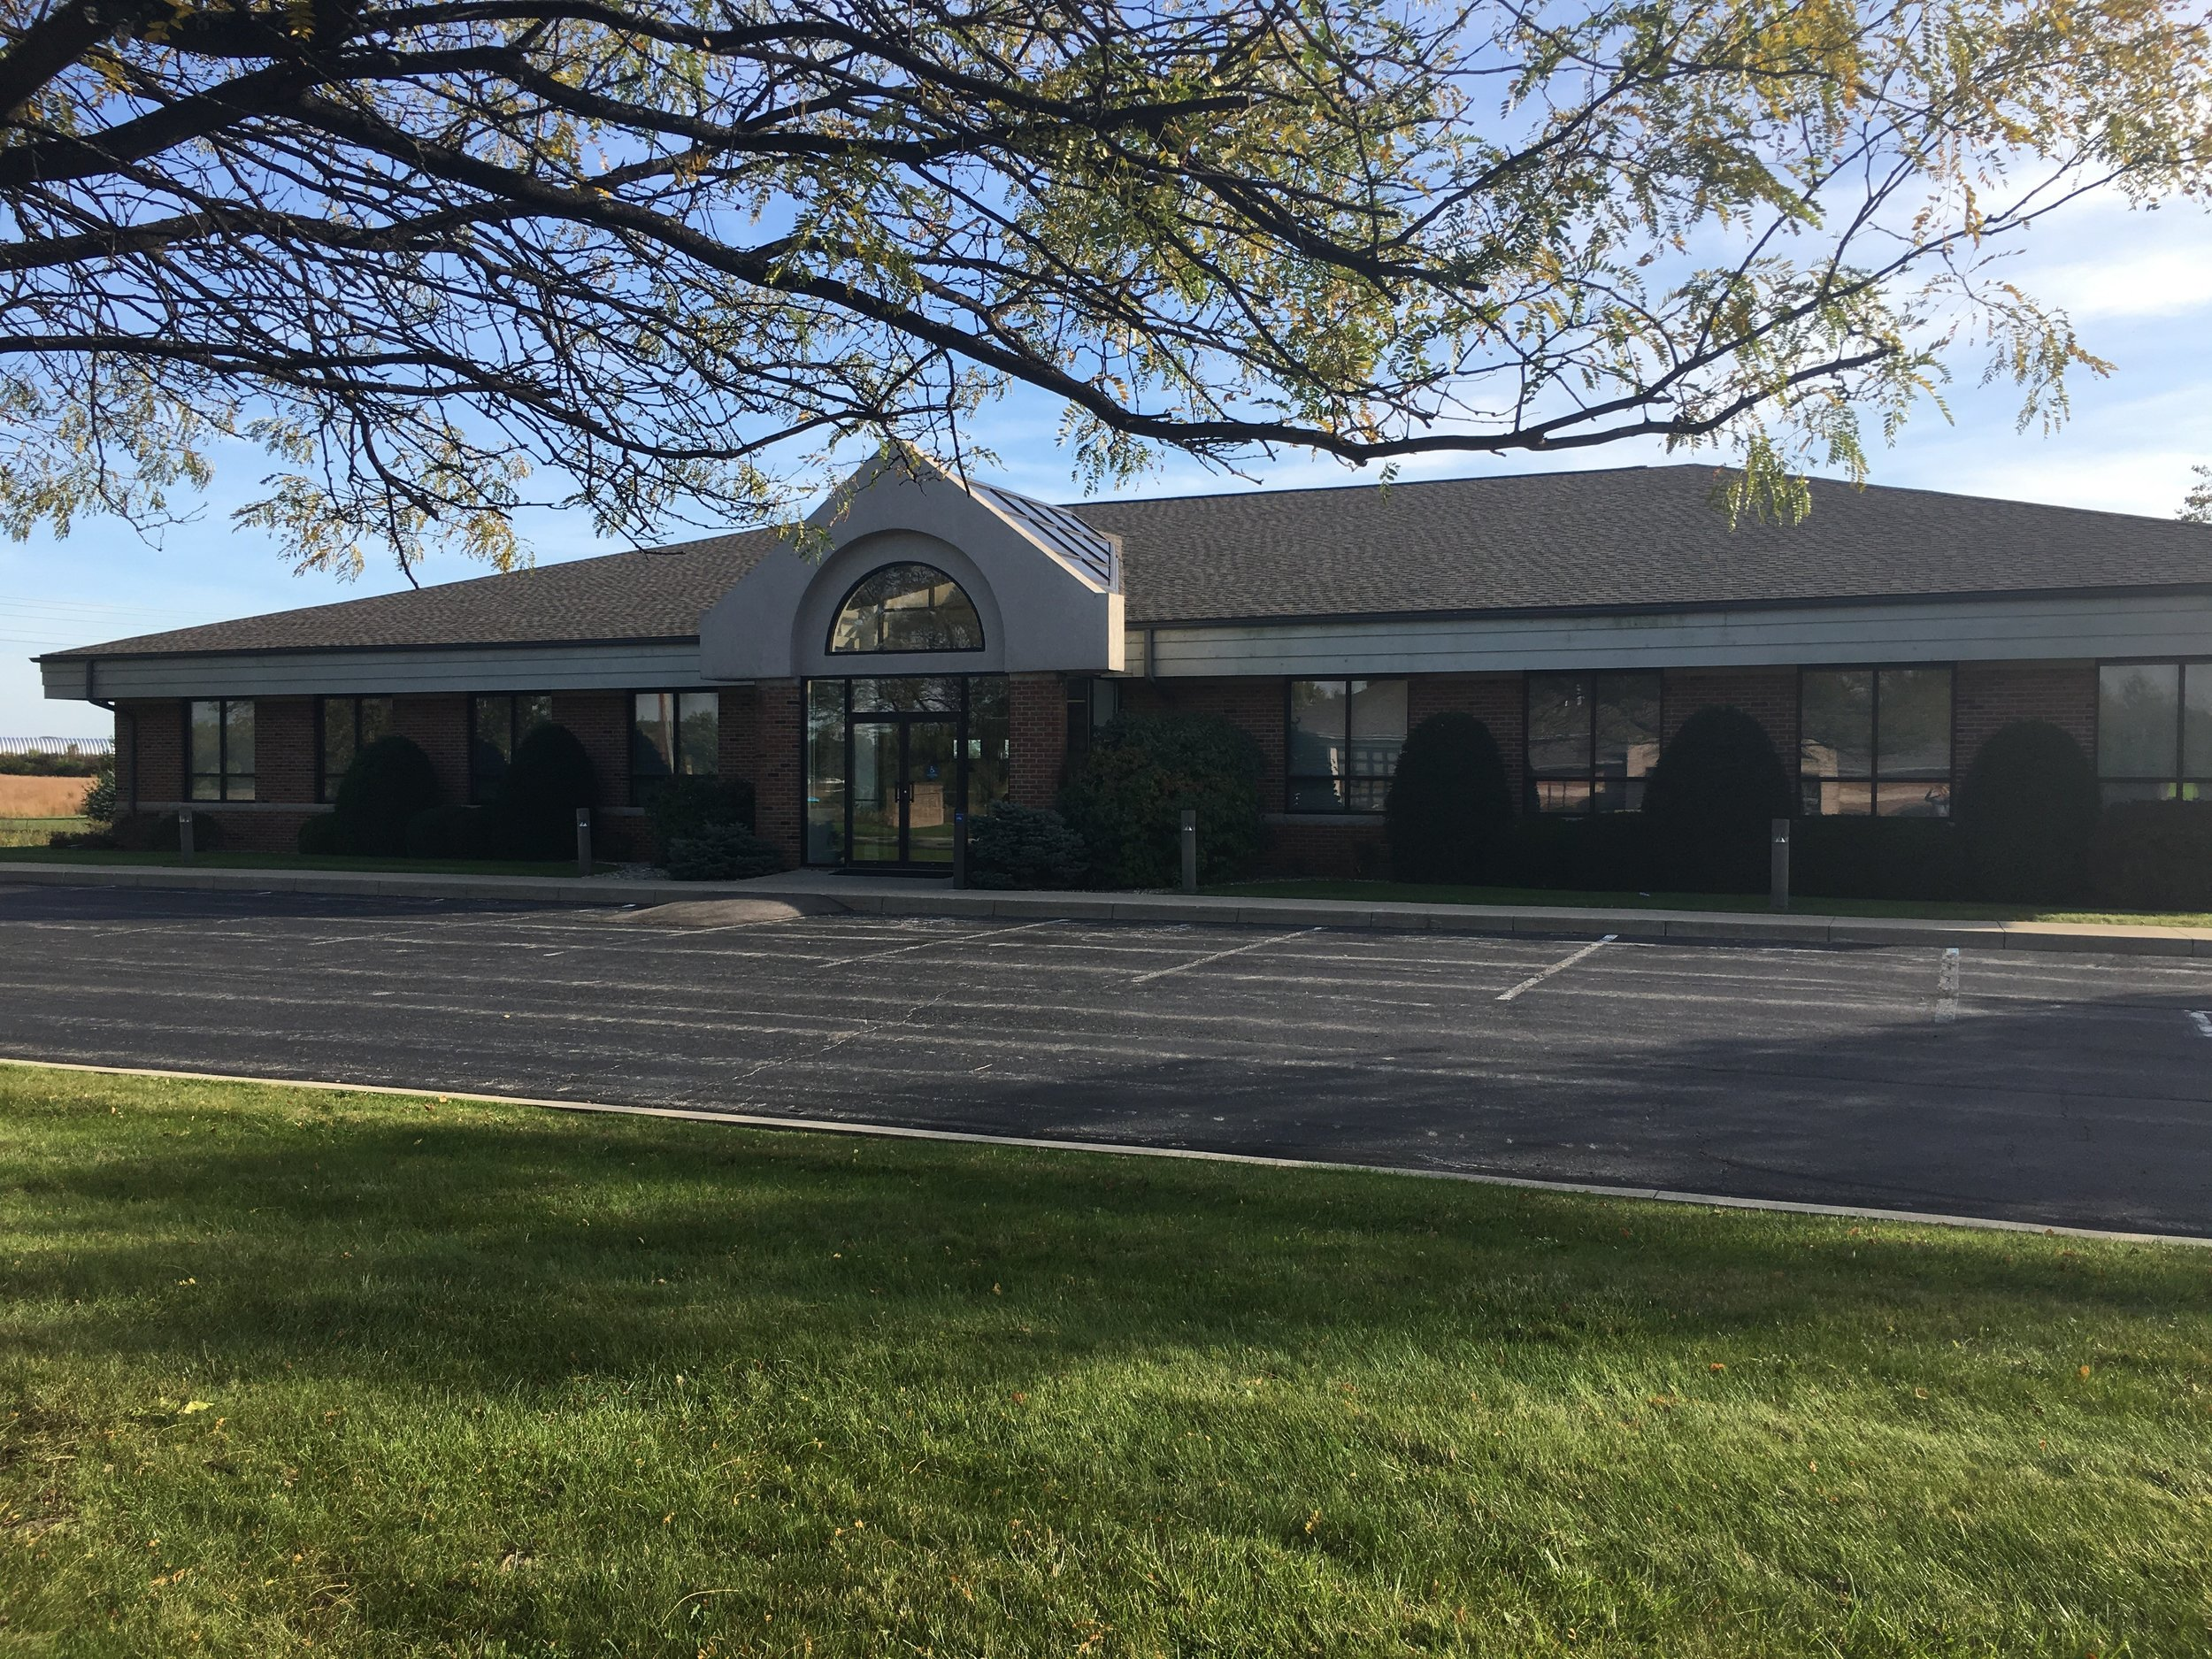 3301 W. Purdue AvenueMuncie, IN 47304 - Monday - Friday 8:00 am - 4:30 pmPhone: (765) 289-1861Fax: (765) 741-5856Click Here For Directions